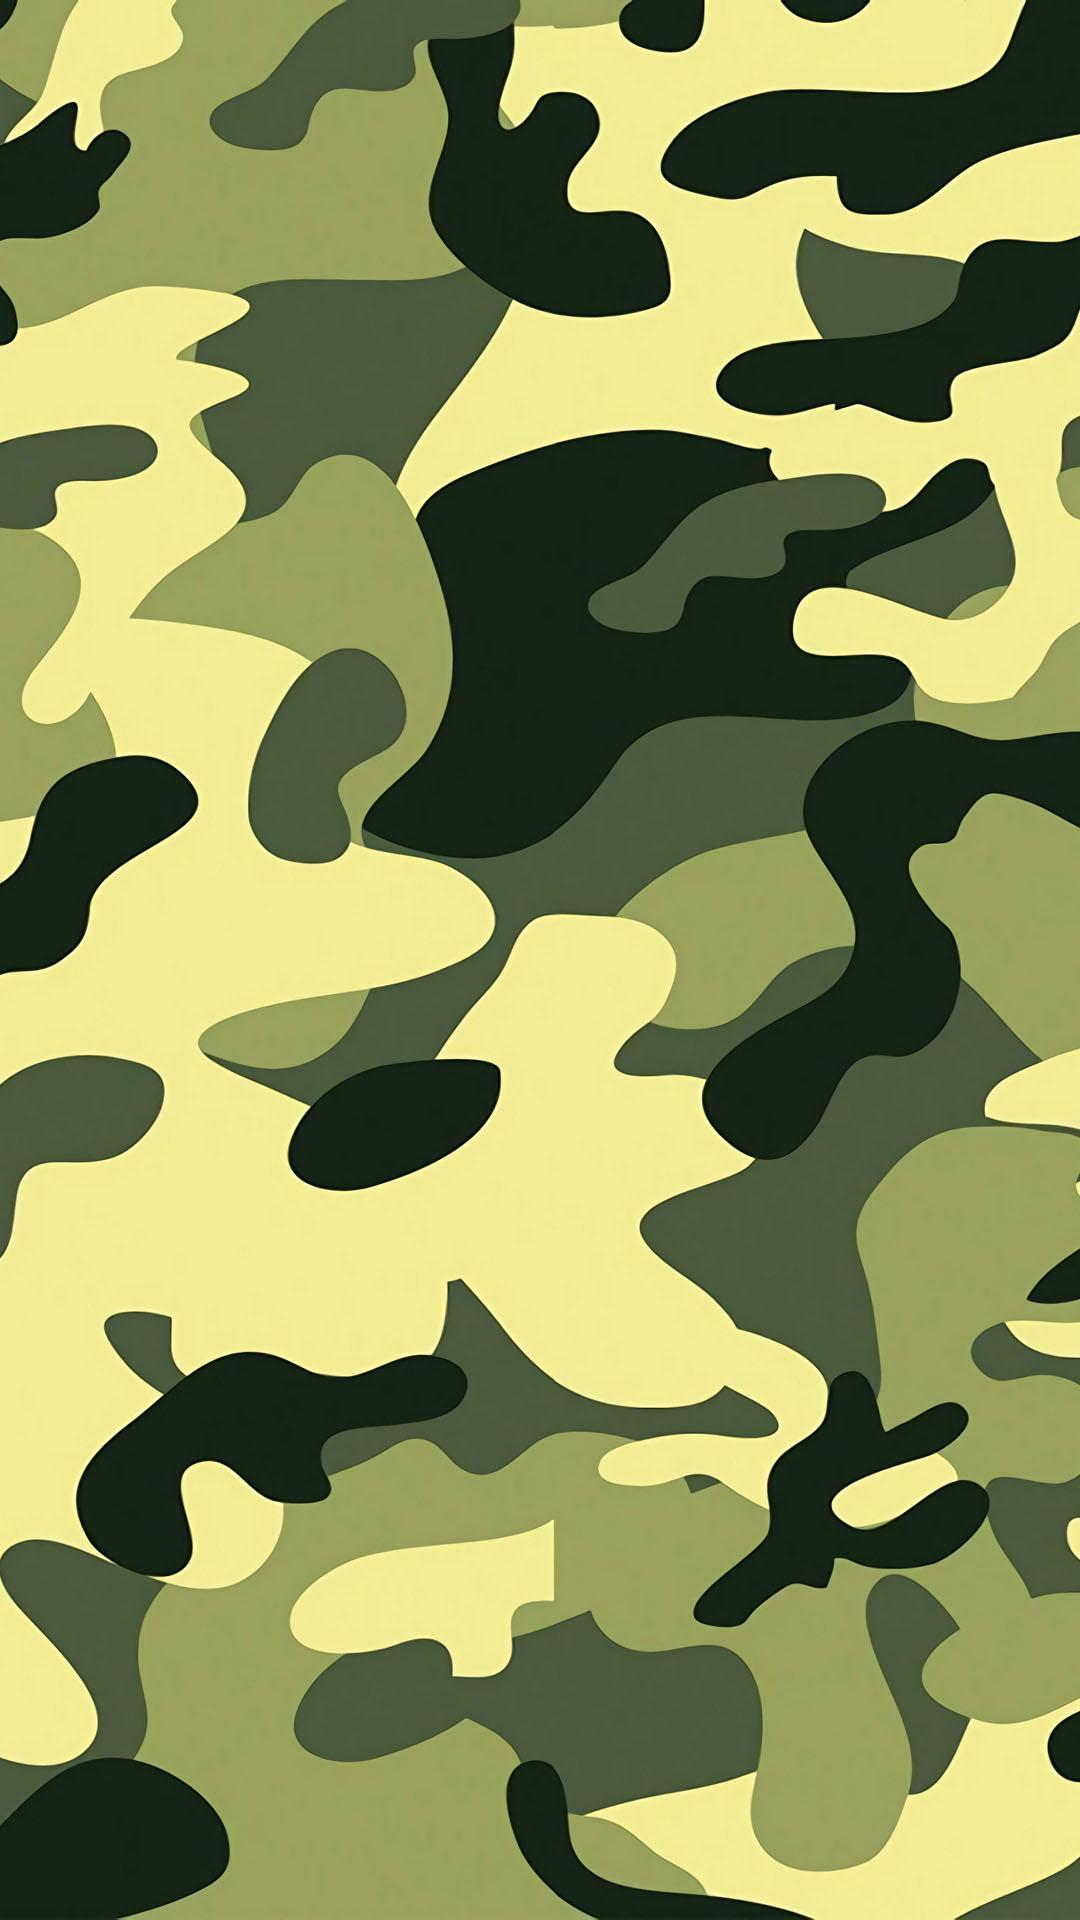 1080x1920 Camouflage Wallpaper (4K Ultra HD) for Android - APK Download